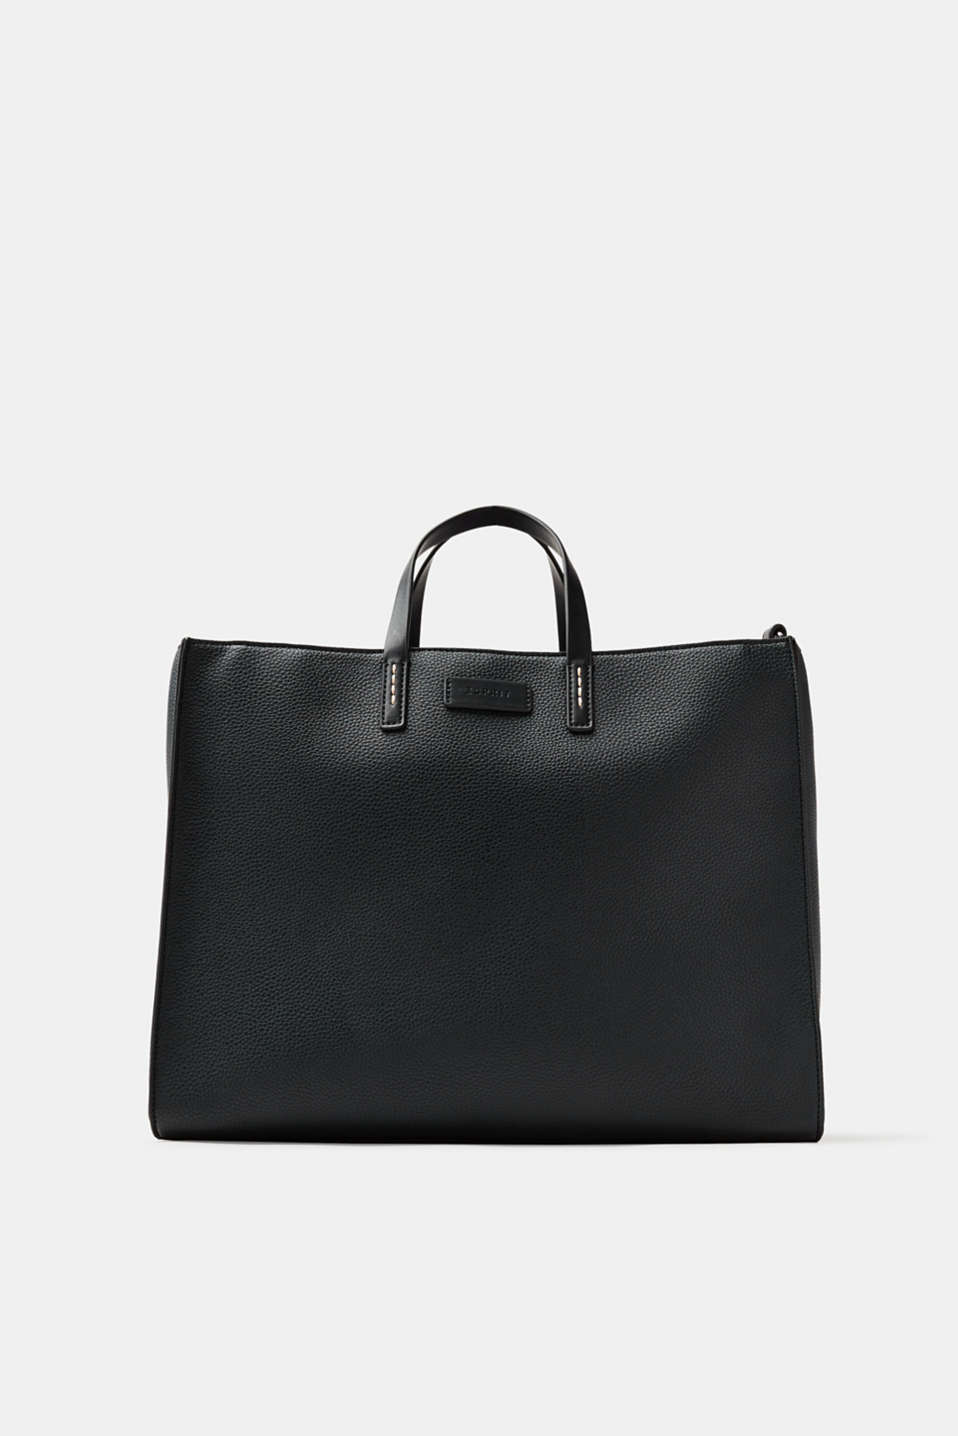 Per i look business o casual: borsa shopper versatile dal look intramontabile.